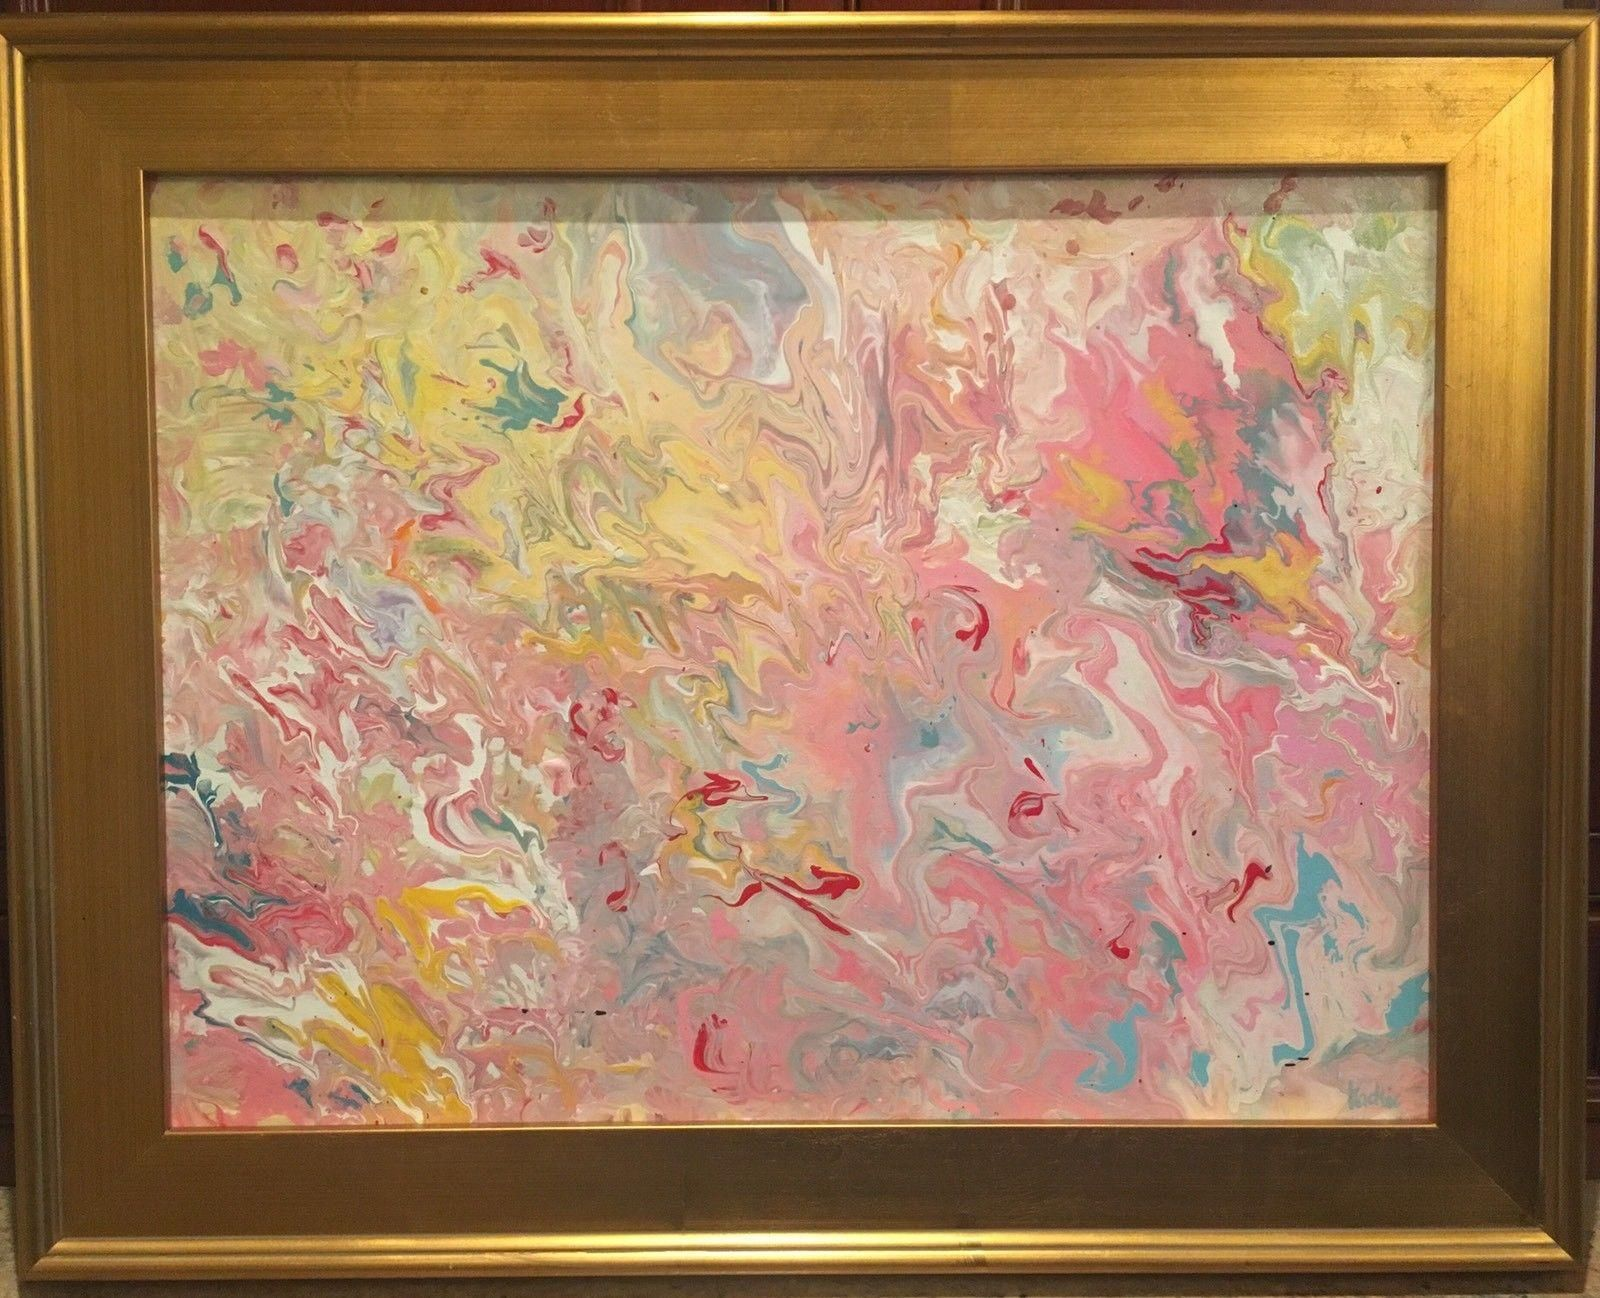 Abstract Pink & Yellow Marbling, Original Acrylic Painting By Artist